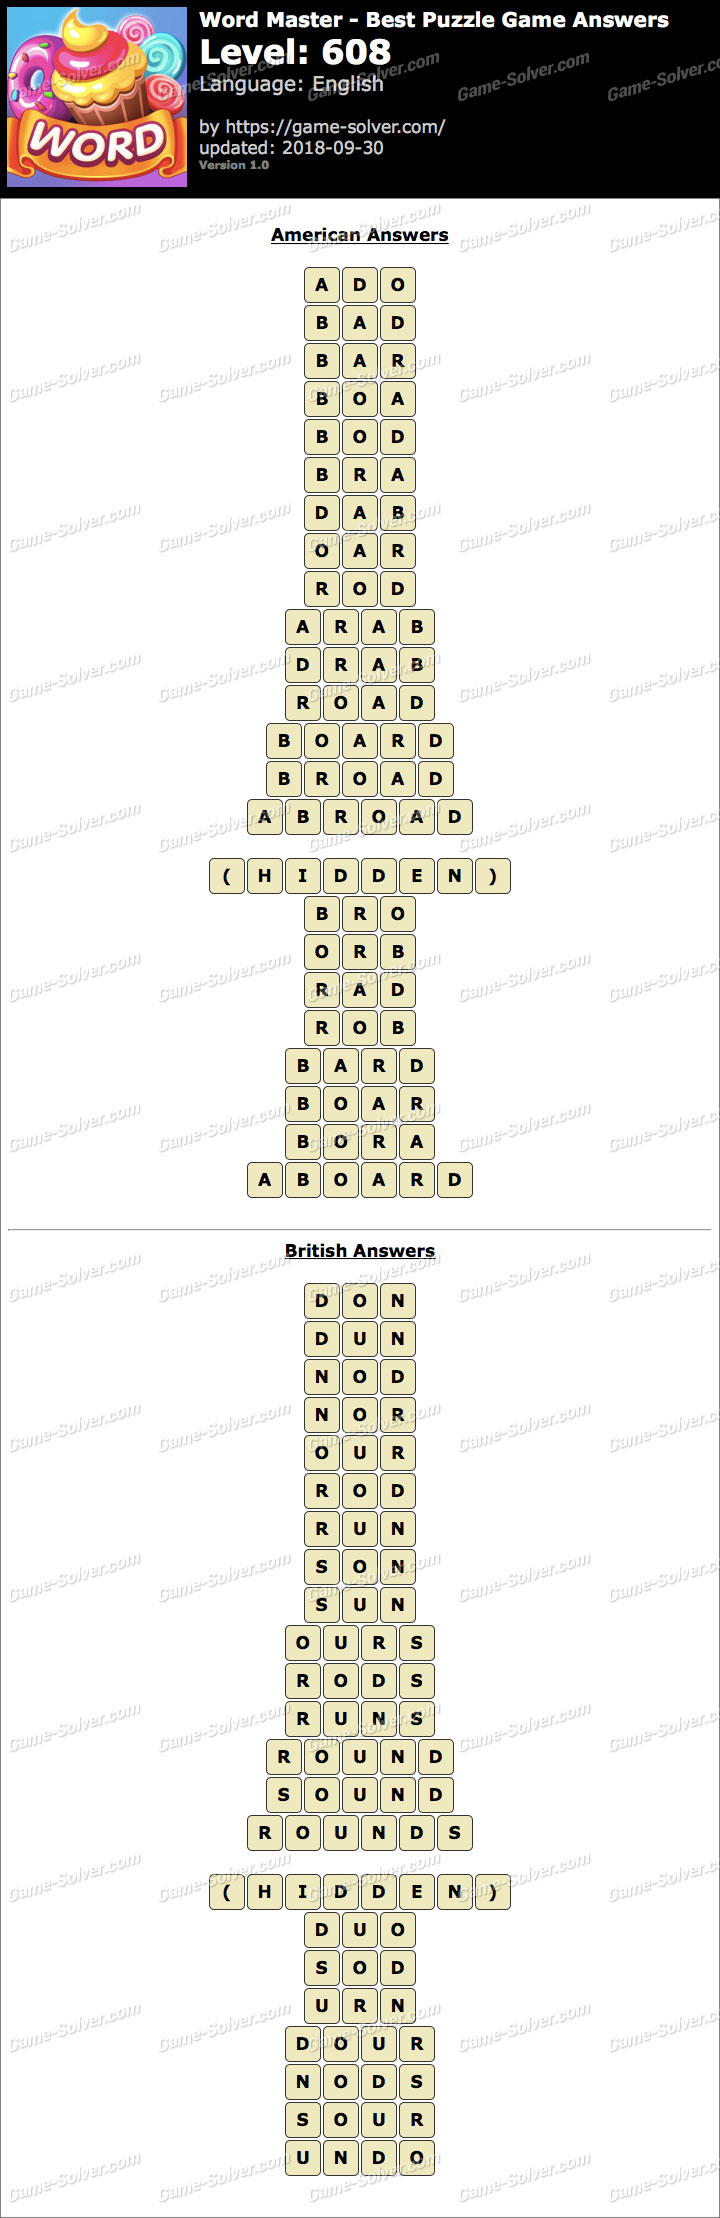 Word Master-Best Puzzle Game Level 608 Answers